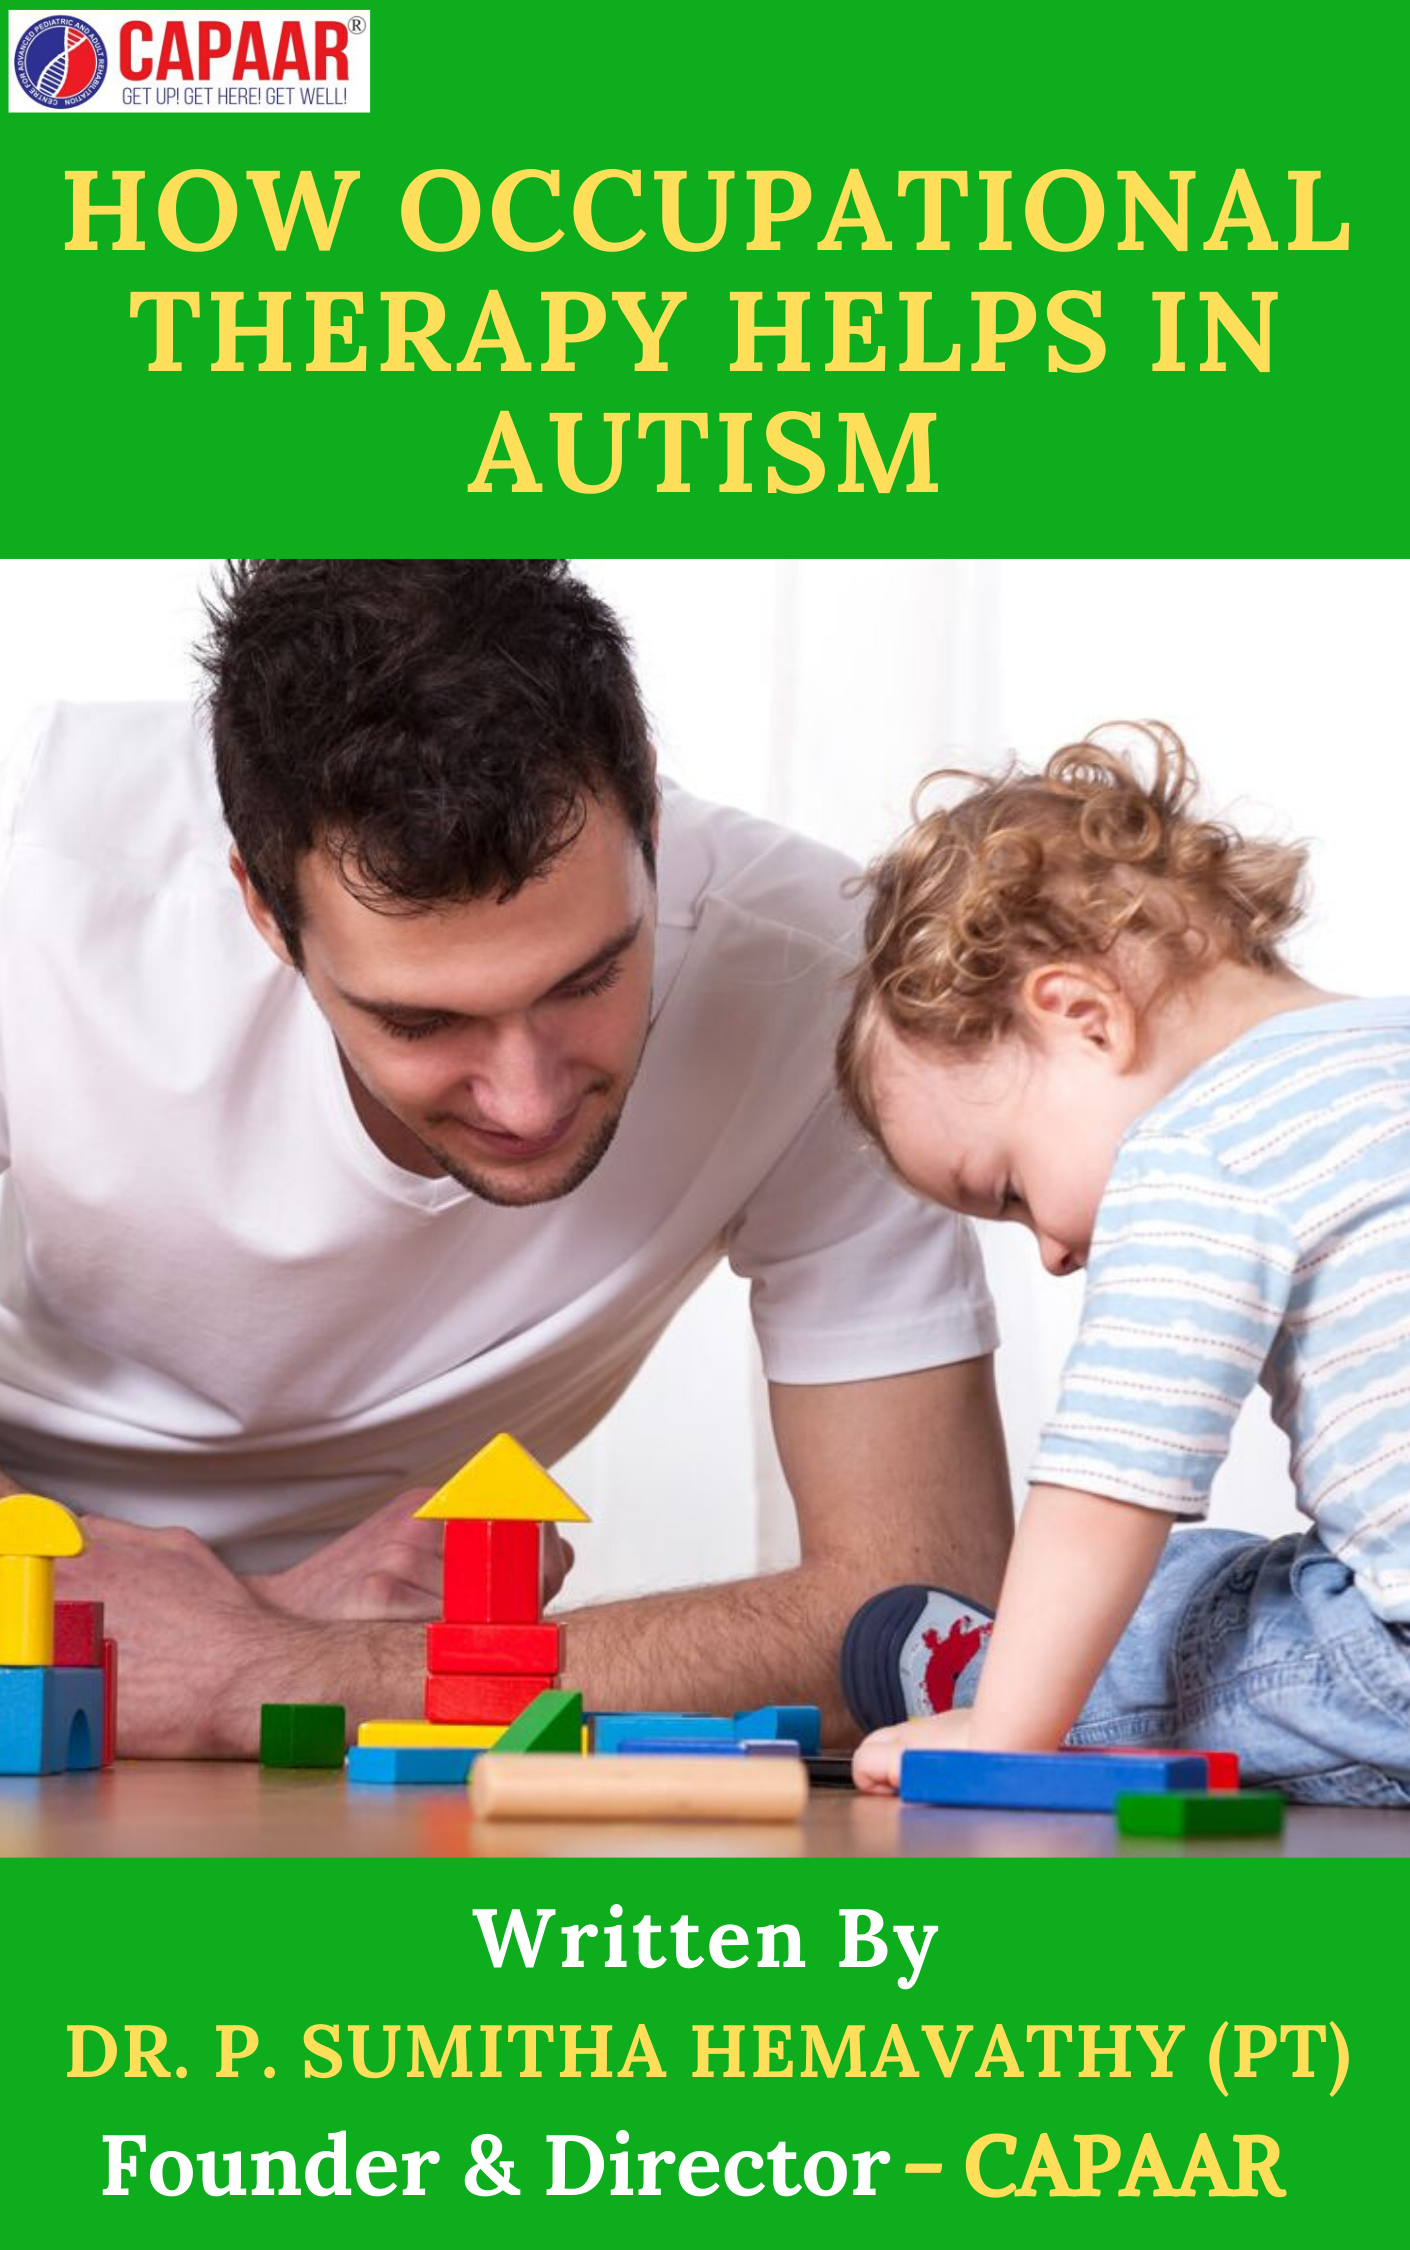 How Occupational Therapy helps in Autism